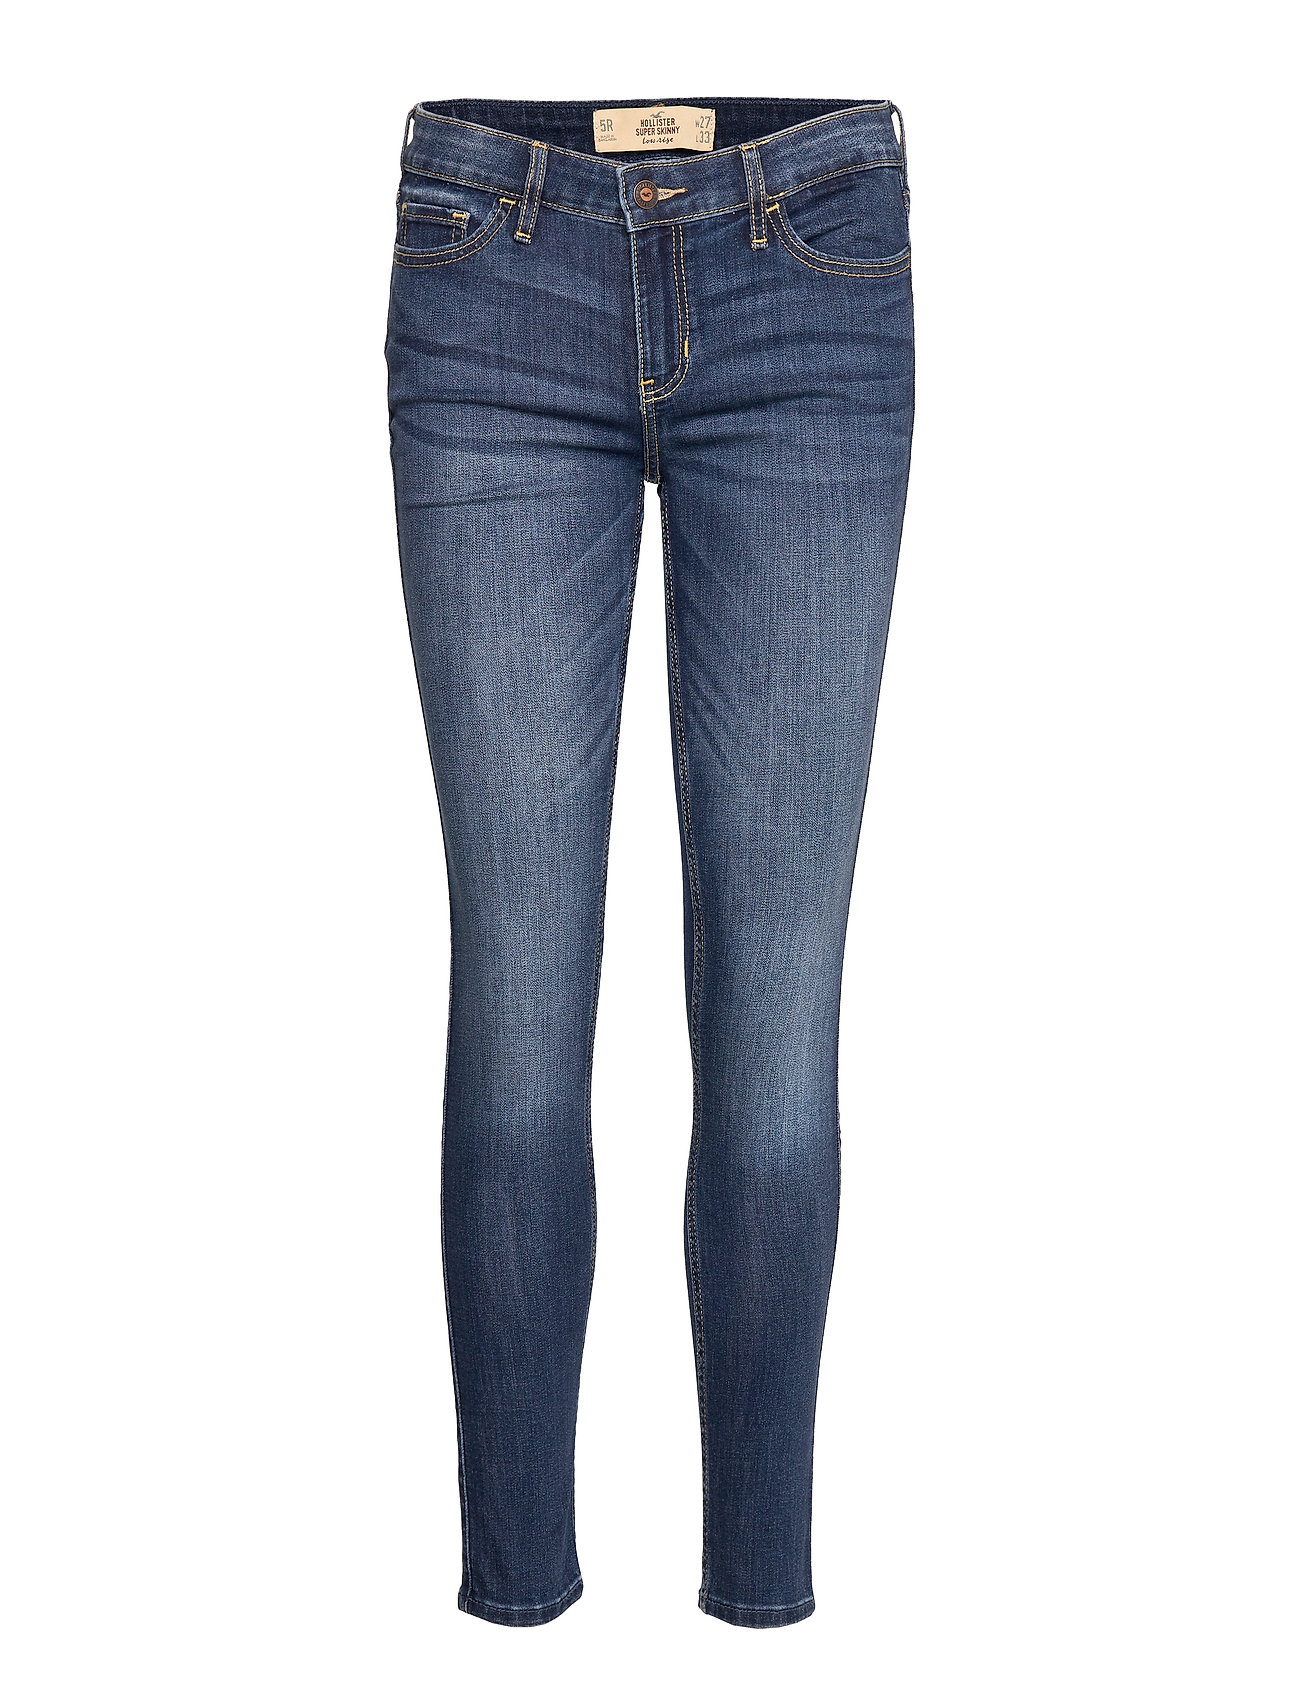 Hollister Jeans - TURQUOISE